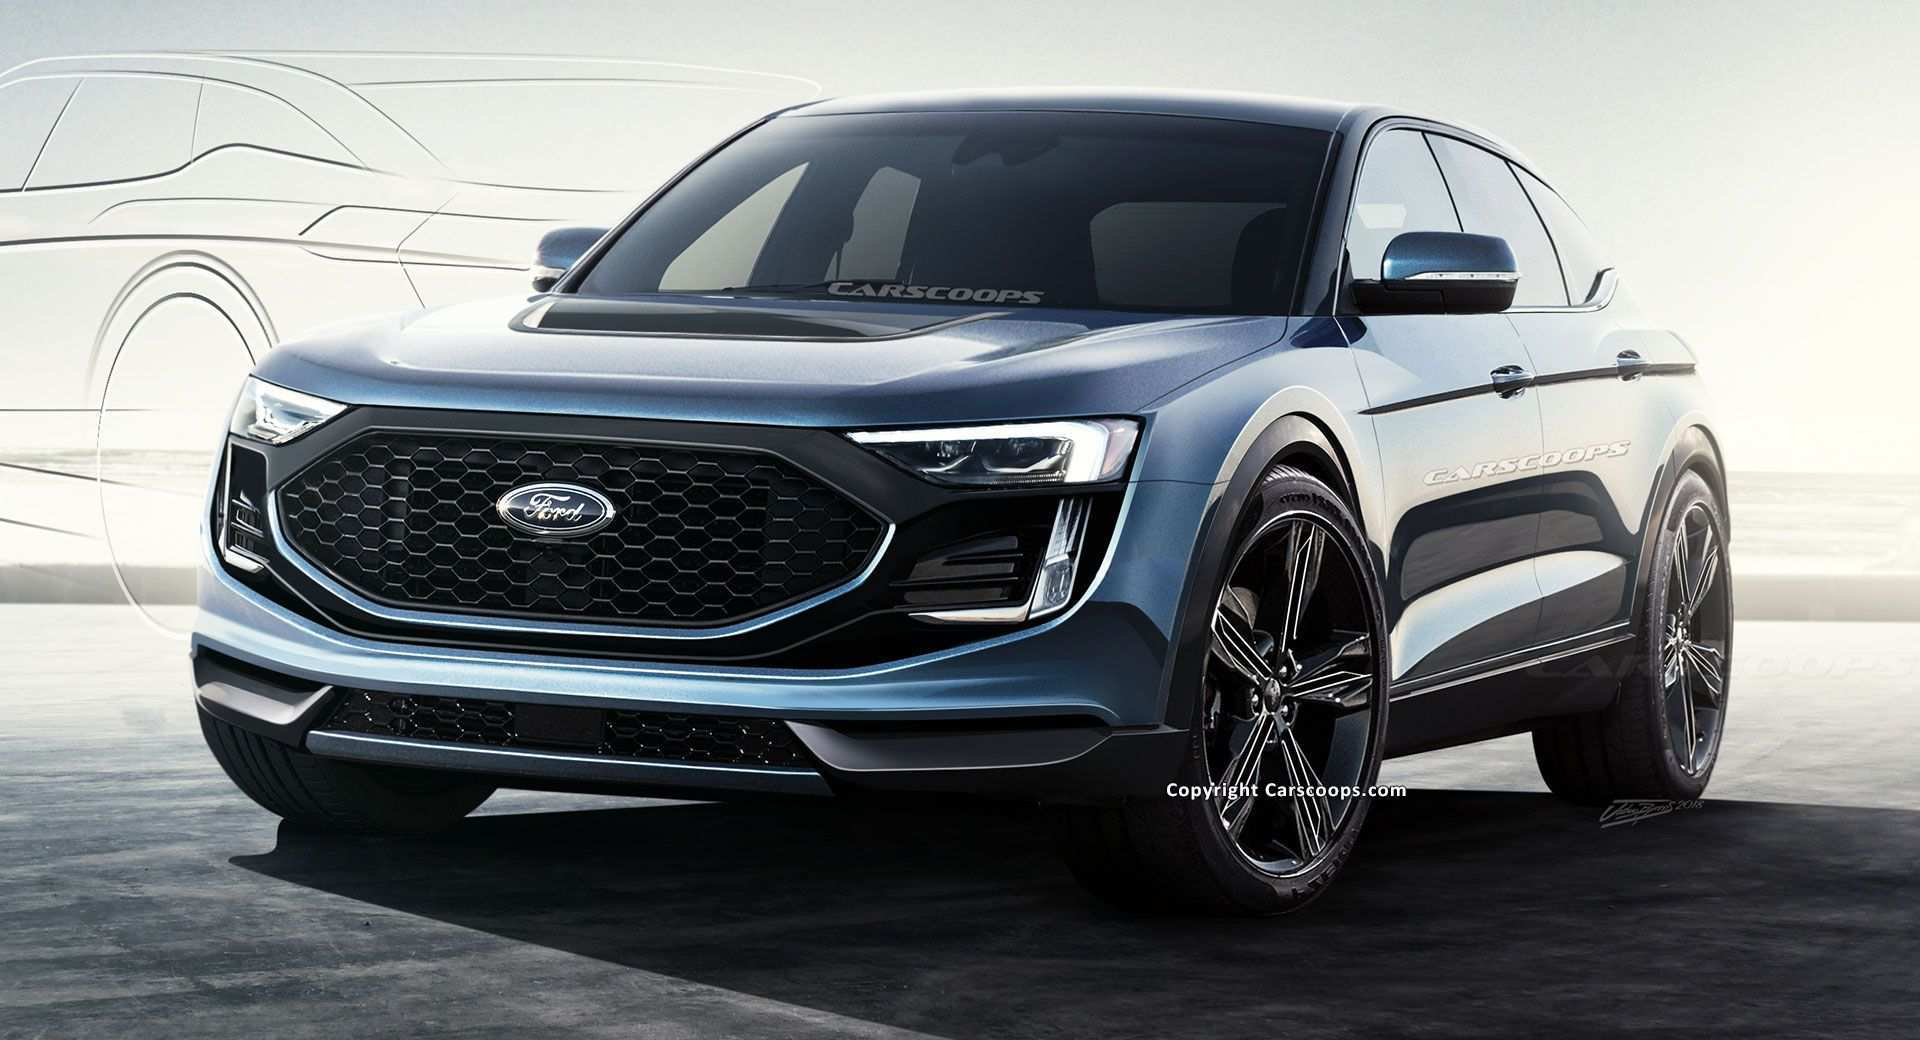 56 The Ford Concept Cars 2020 Configurations for Ford Concept Cars 2020